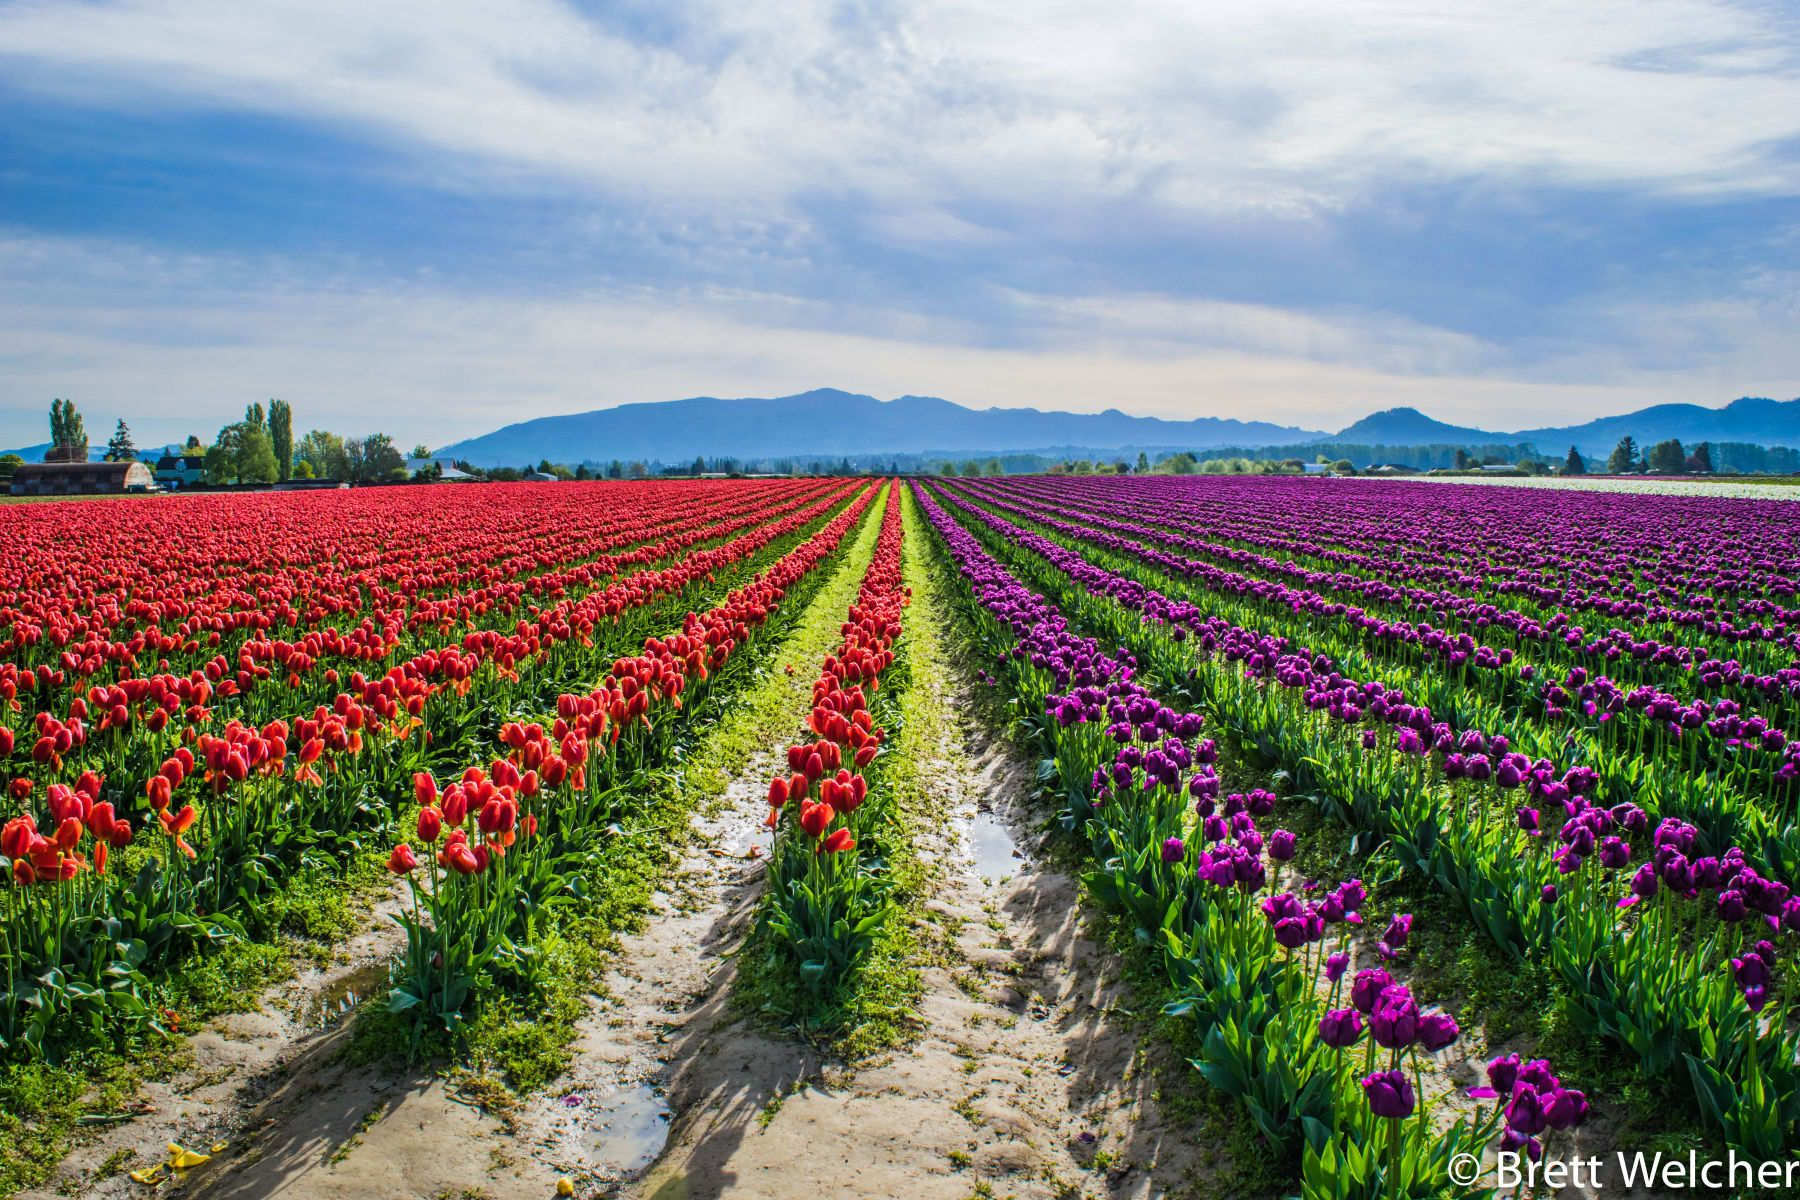 The Skagit Valley Tulip Festival is one of the destination events for the Pacific Northwest, held from April 1-30. Every year, hundreds of thousands of people come to enjoy the celebration of spring as millions of tulips burst into bloom. As with all thing